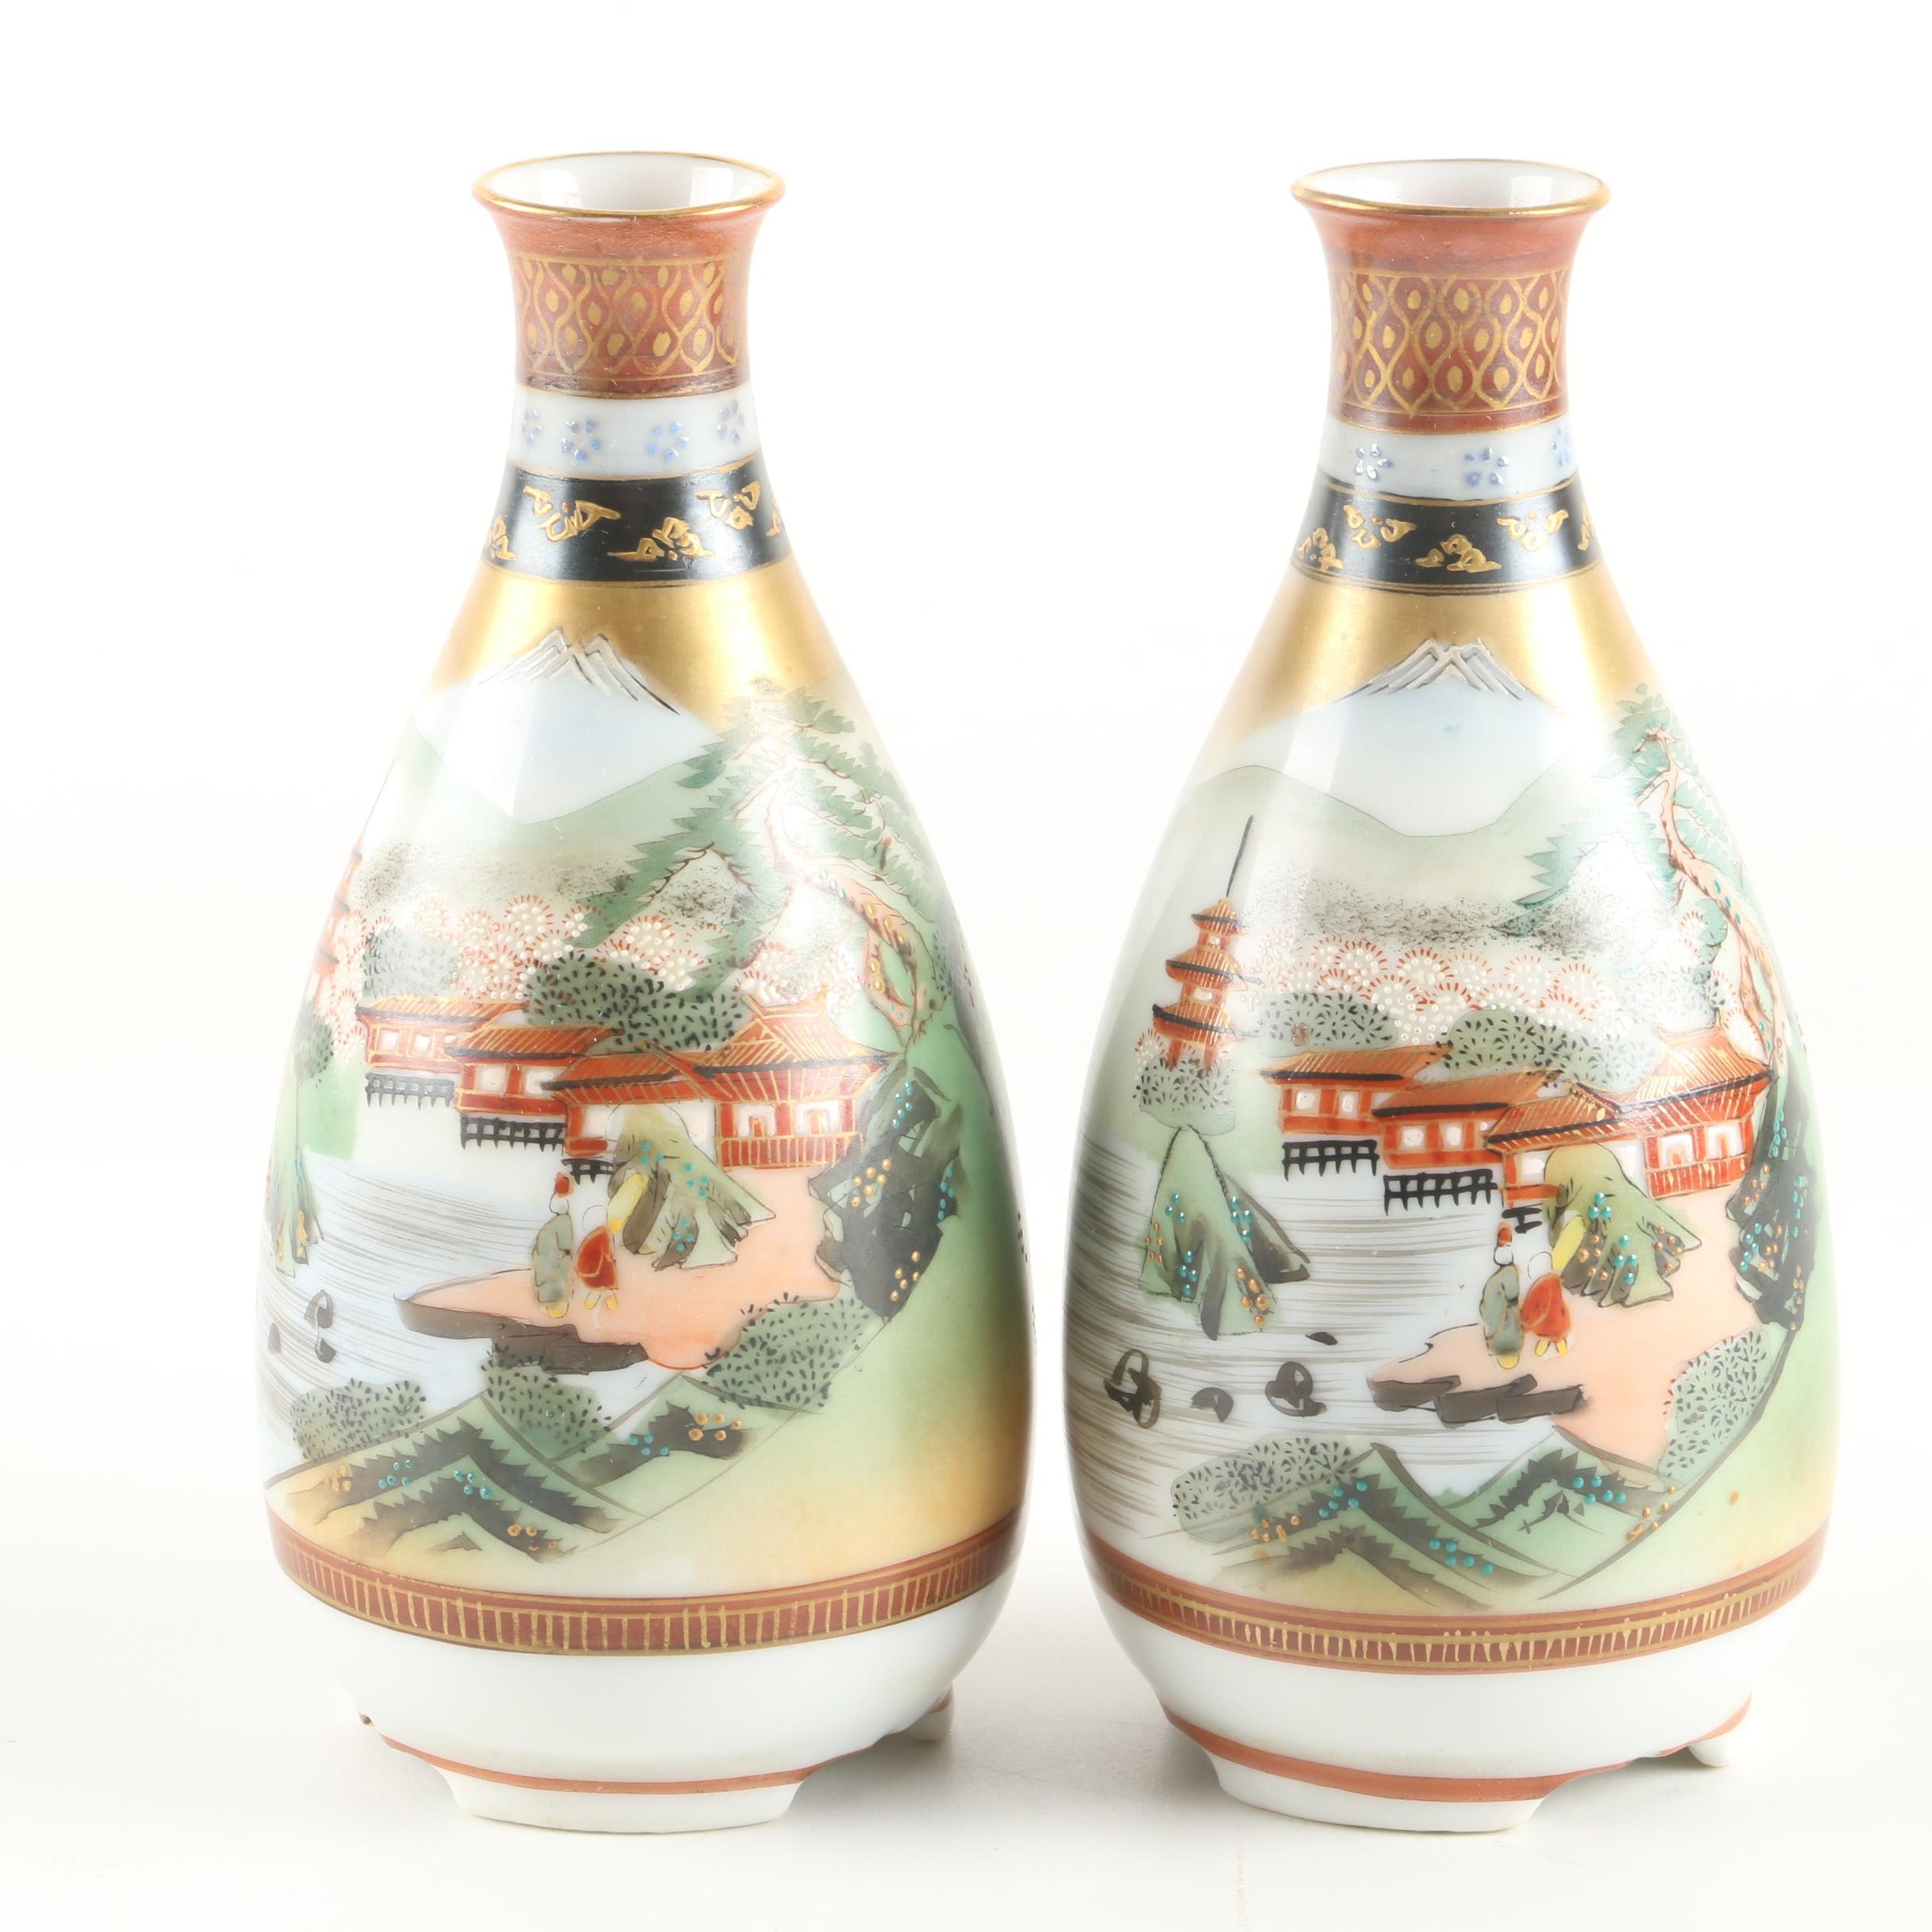 Japanese Hand-Painted Kutani Porcelain Bud Vases with Moriage Accents